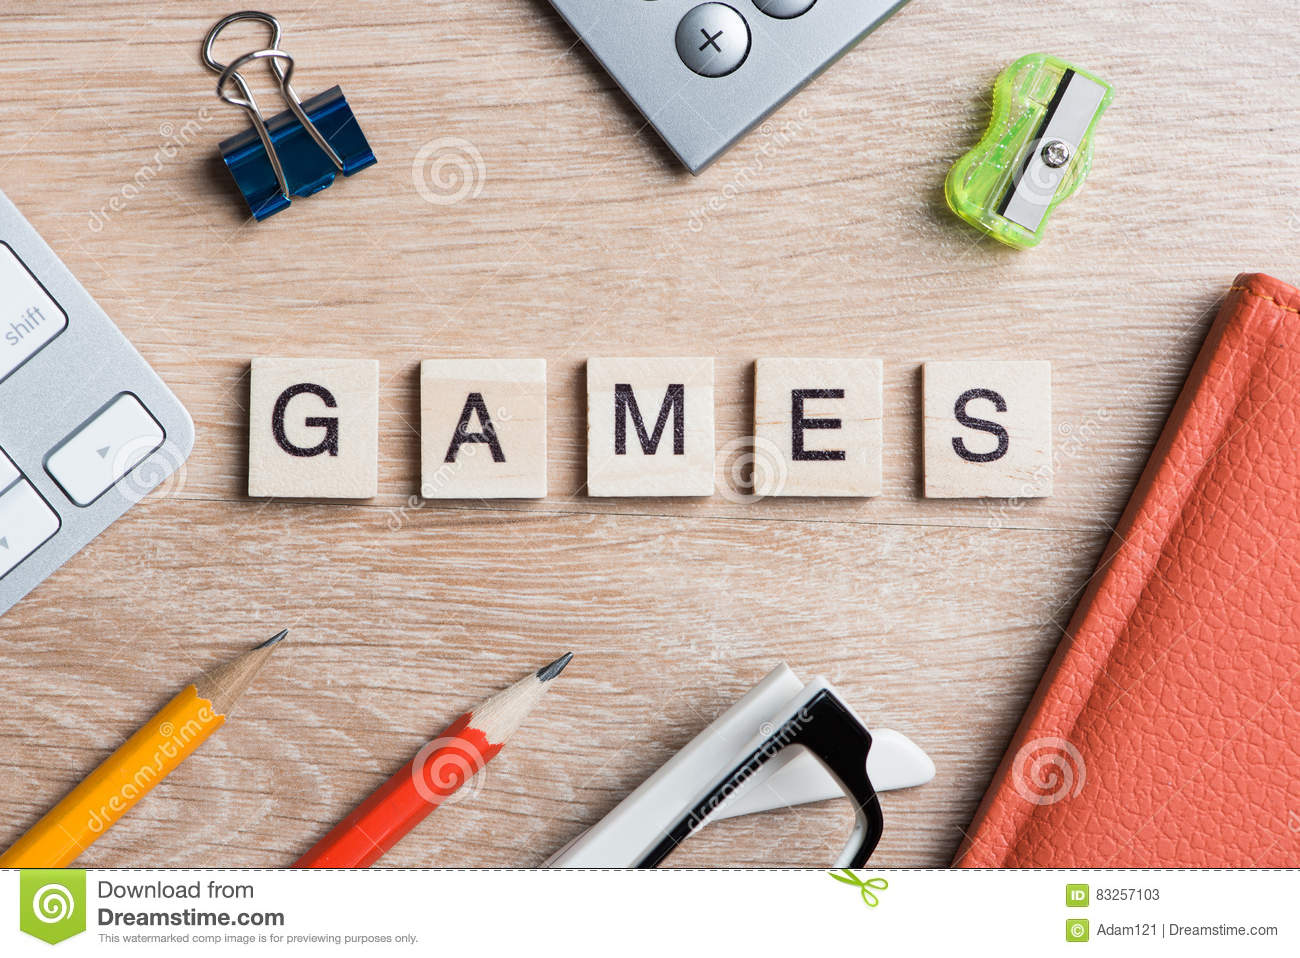 Elements of education game spelling words on wooden office table download comp ccuart Image collections